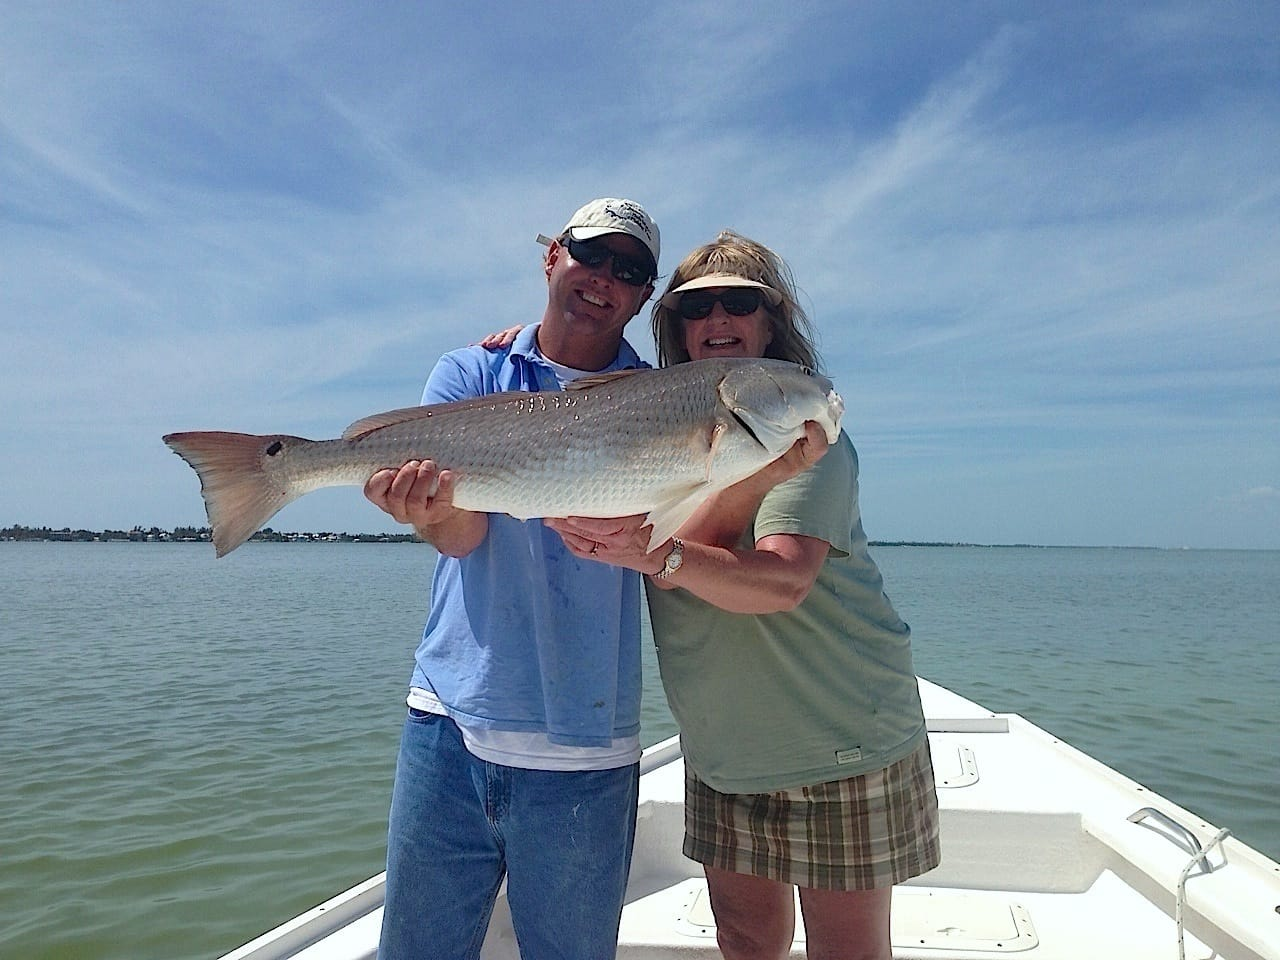 429 too many requests for Fort myers fishing guides